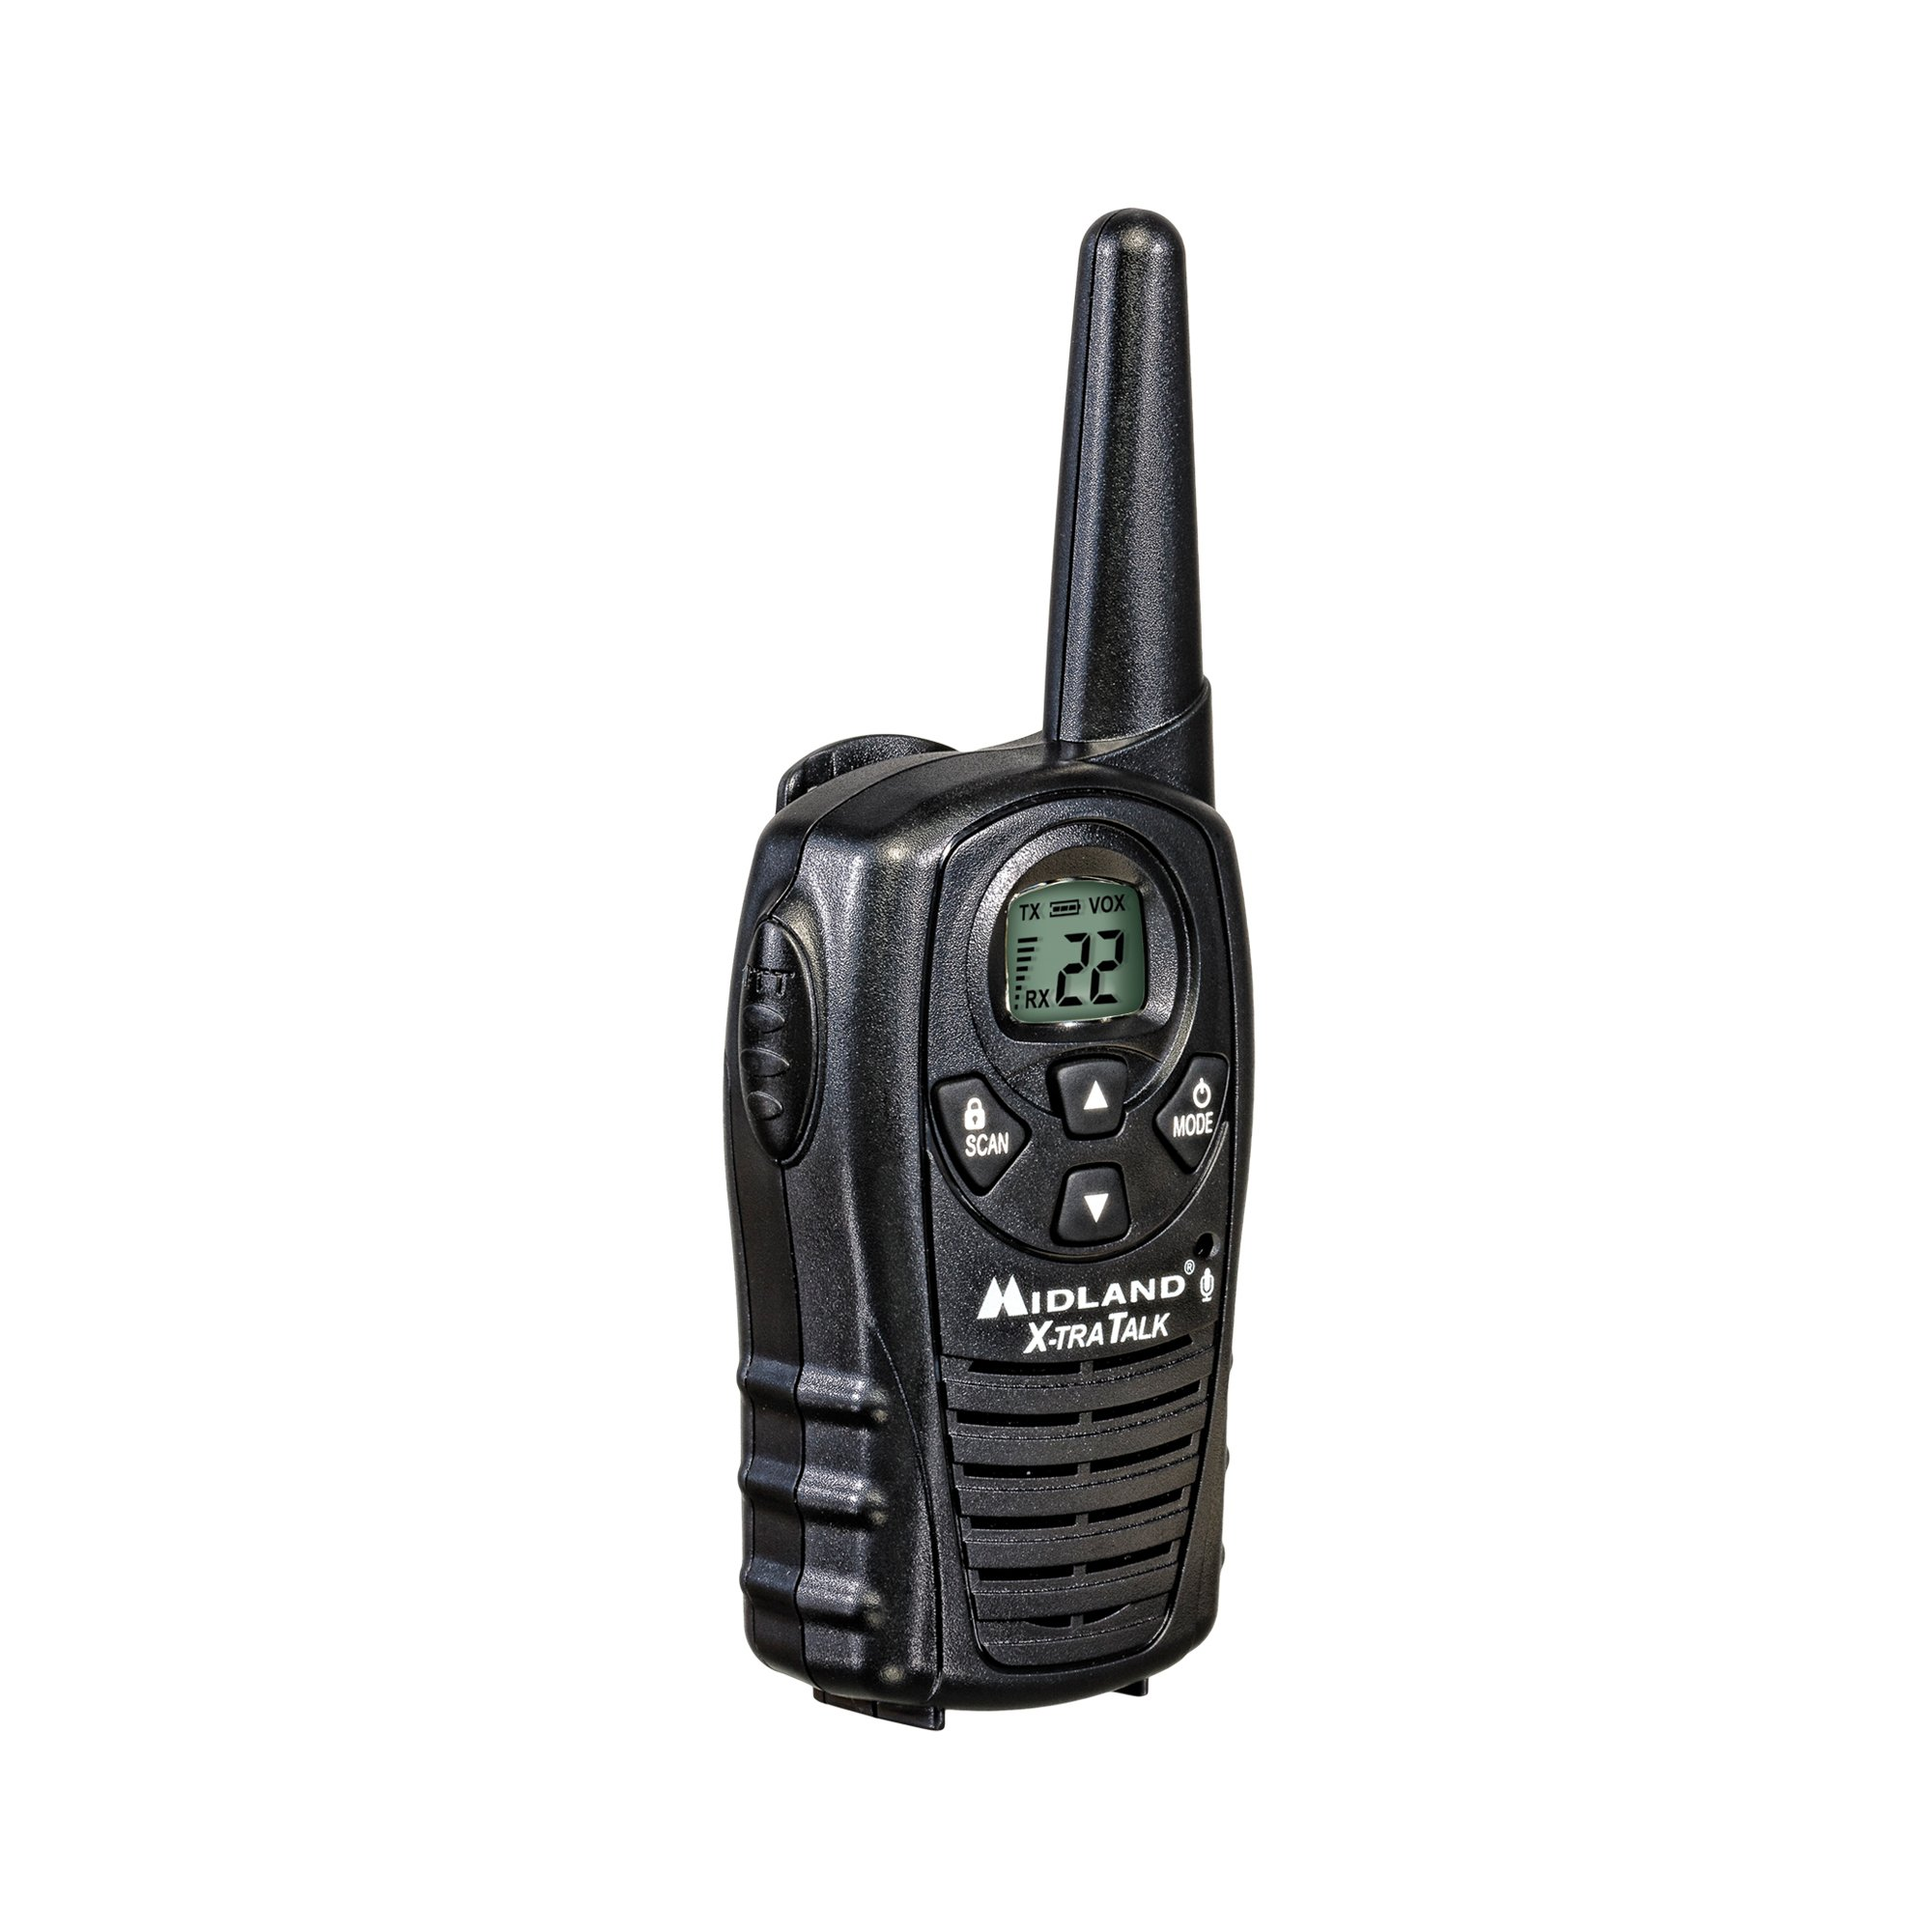 Midland - LXT118, FRS Walkie Talkies with Channel Scan - Up to 18 Mile Range Two Way Radio, Hands-Free VOX, Water Resistant (Pair Pack) (Black) by Midland (Image #6)